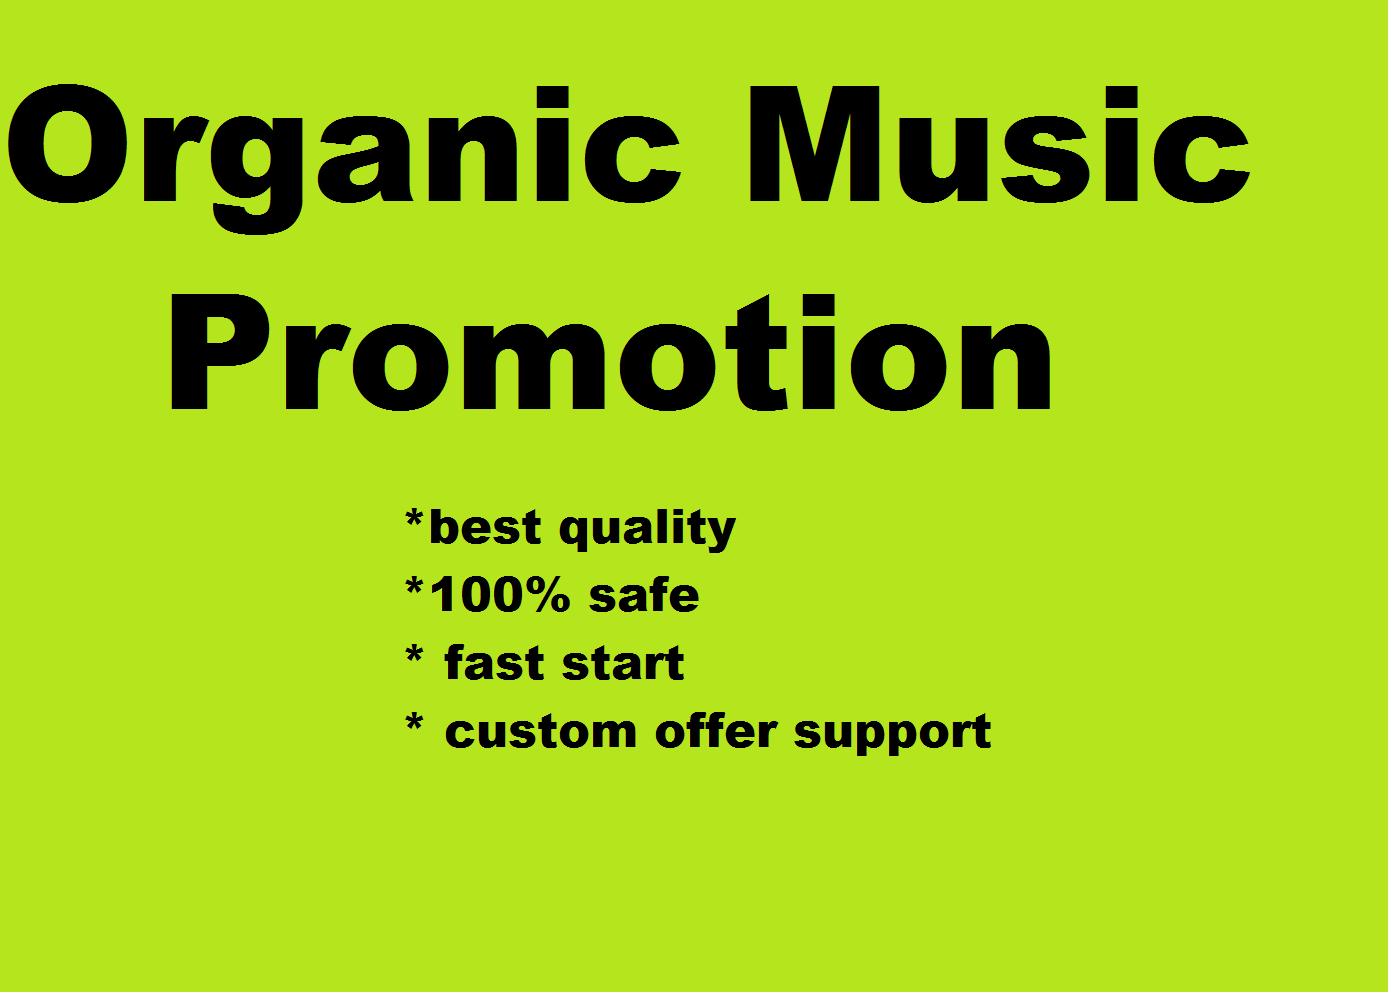 i will promote your music and send more than 25 million of people to your music link